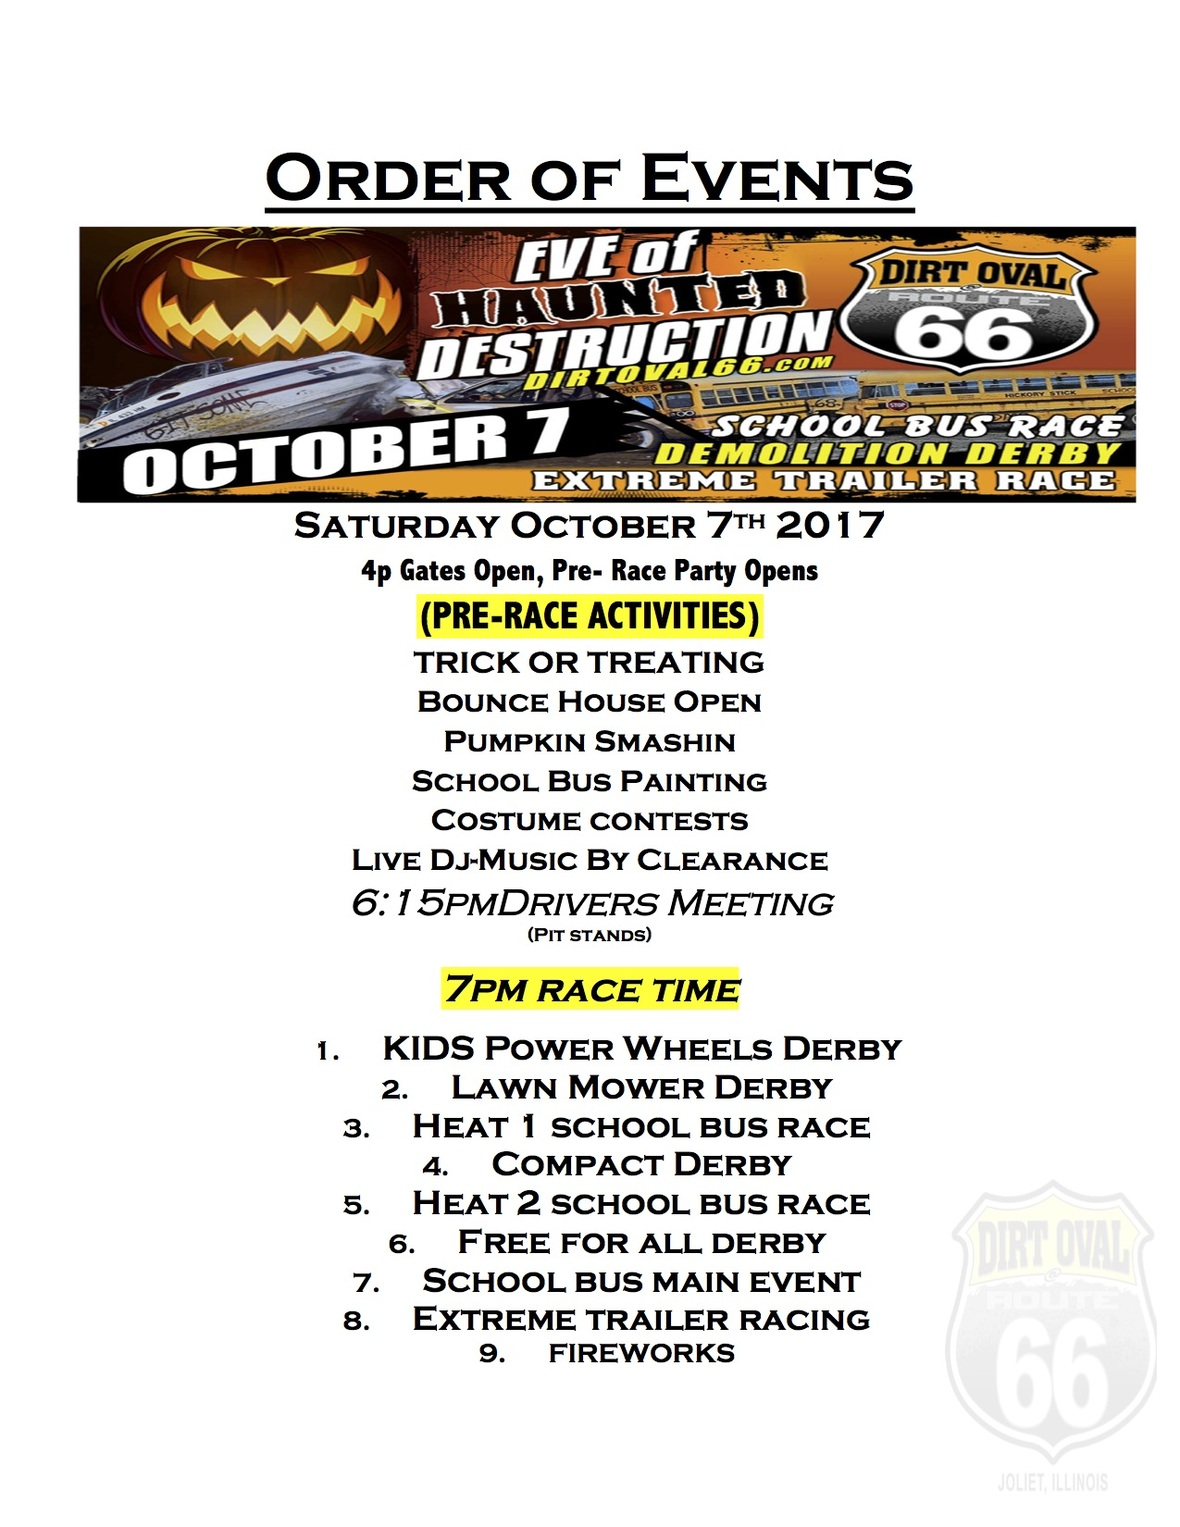 66 order of events 10-7-17